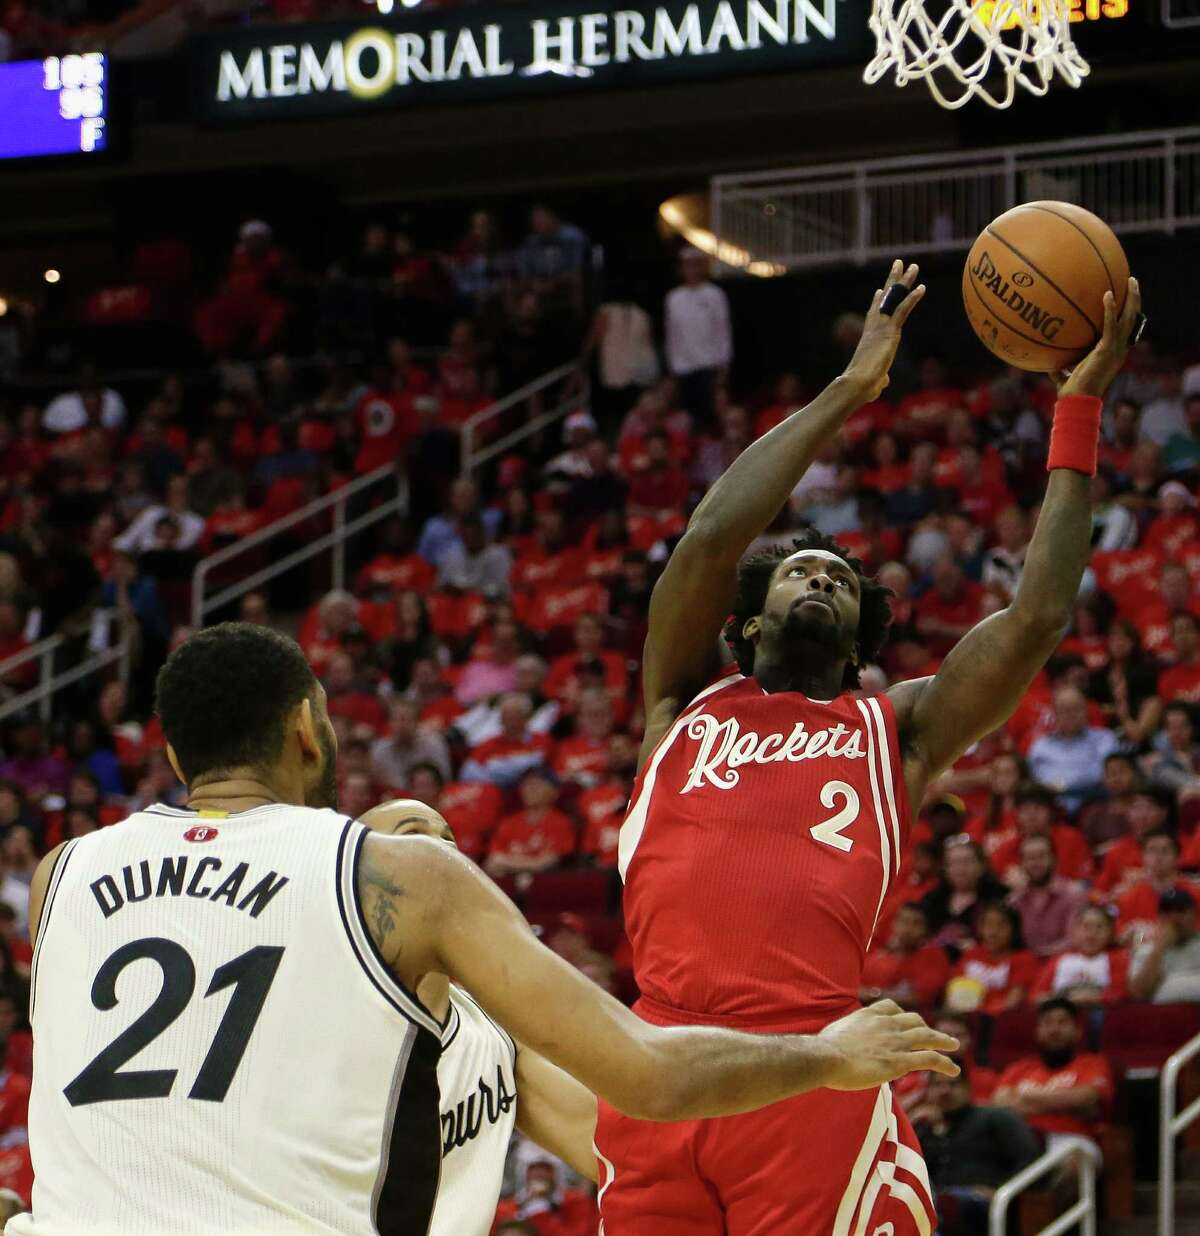 Houston Rockets guard Patrick Beverley (2) drives to the basket against San Antonio Spurs guard Tony Parker, rear, and center Tim Duncan (21) in the first half of an NBA basketball game Friday, Dec. 25, 2015, in Houston. (AP Photo/Bob Levey)